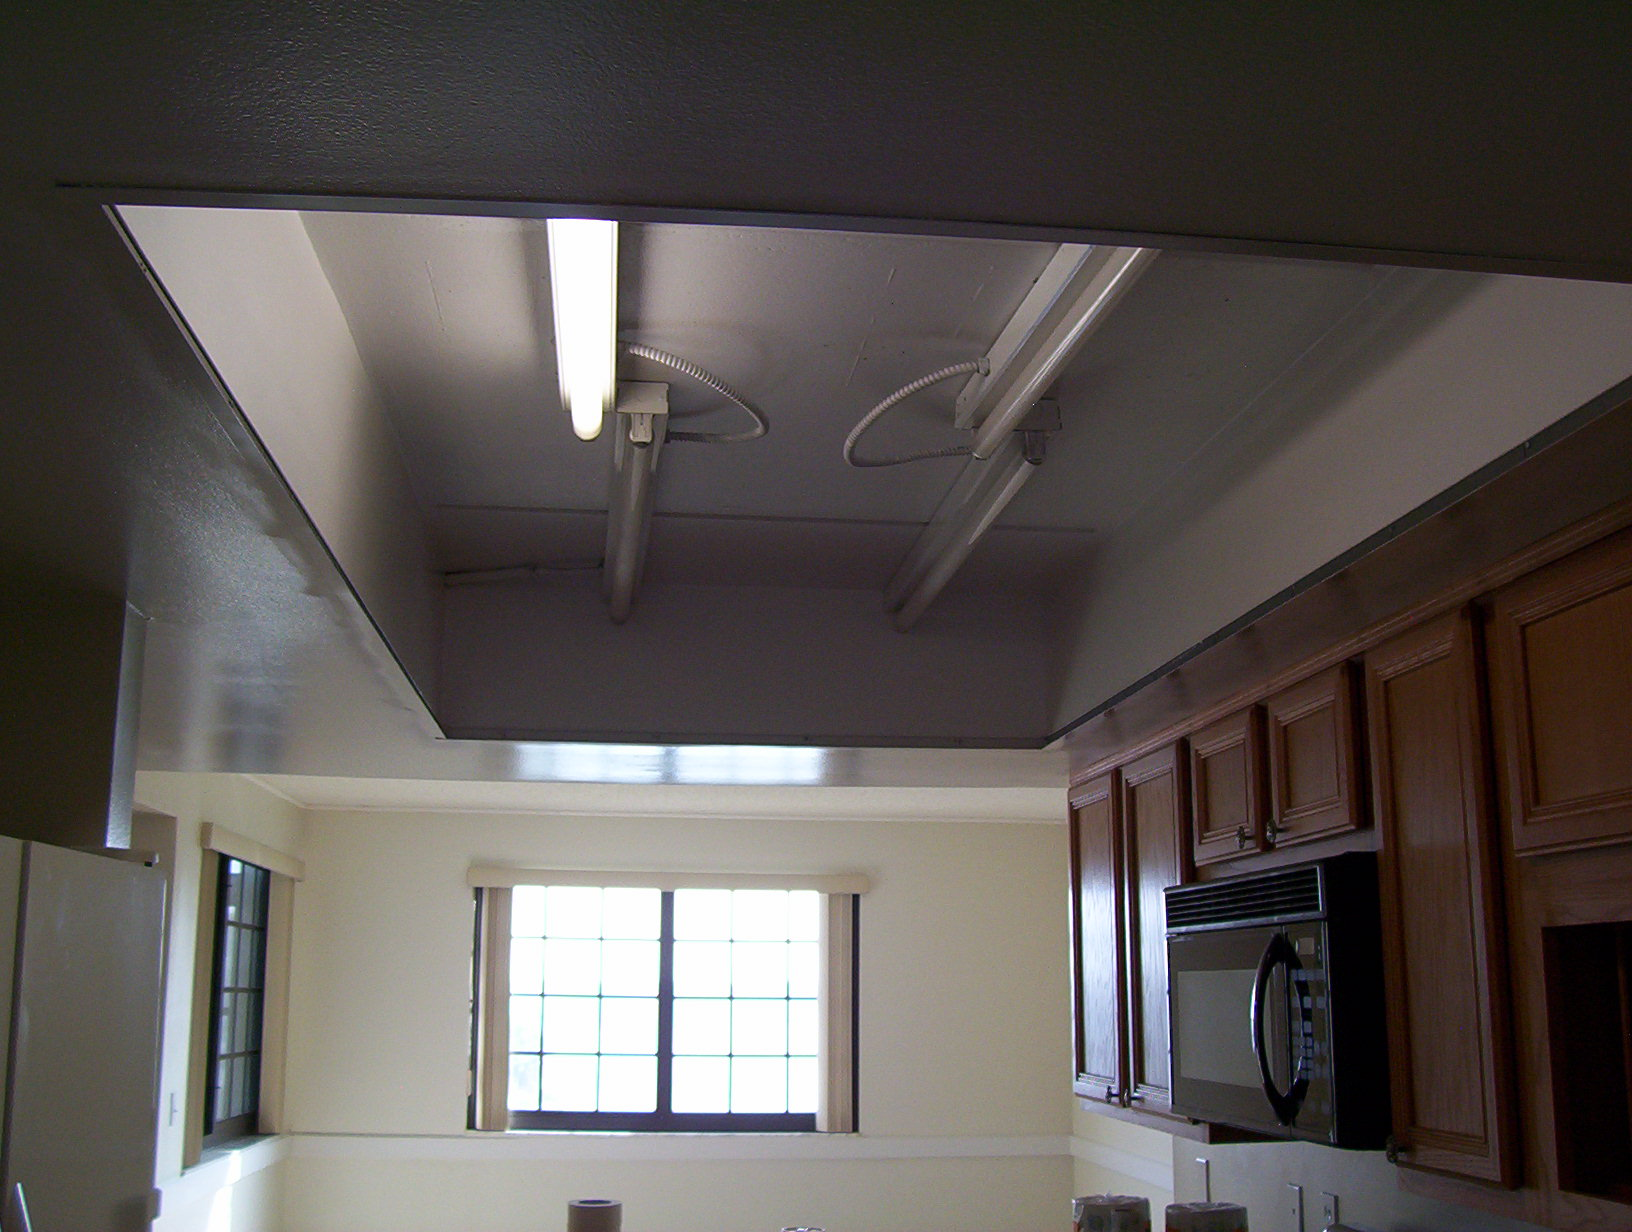 what to do with my old kitchen drop ceiling lighting kitchen ceiling lighting Cocoa Beach condo kitchen grid ceiling removed